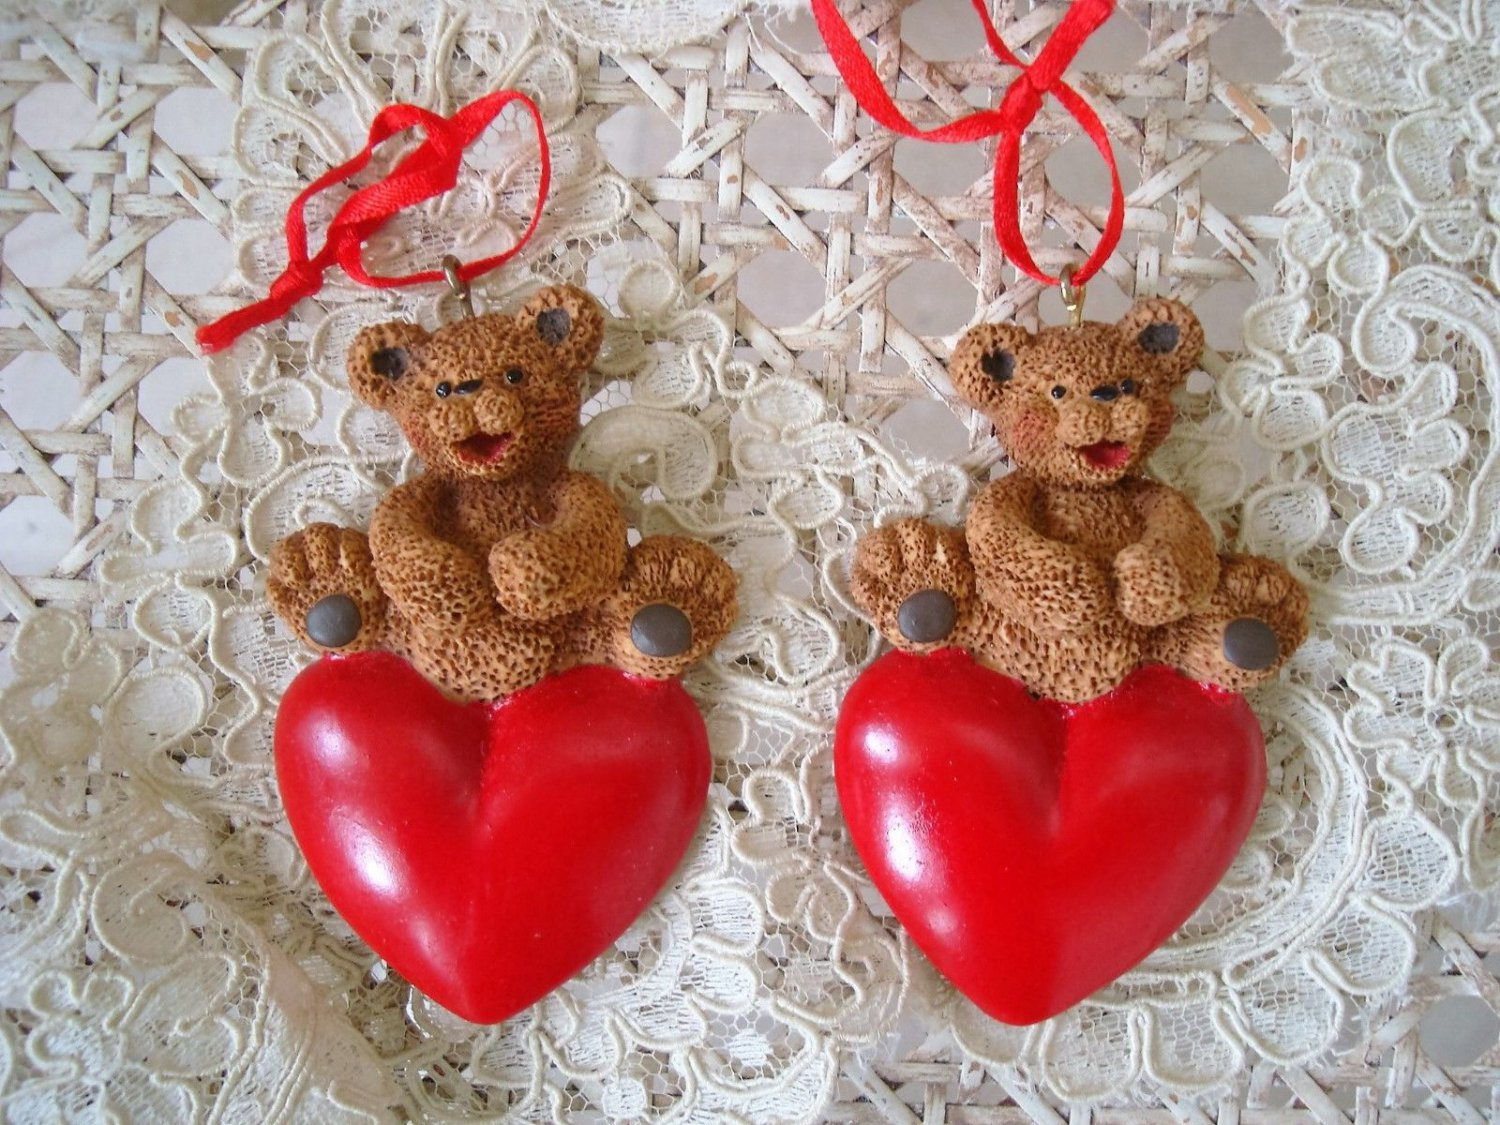 HOLLY BEARIES 2 BEARS WITH HEART MAGNETS CHRSITMAS ORNAMENTS **NEW**